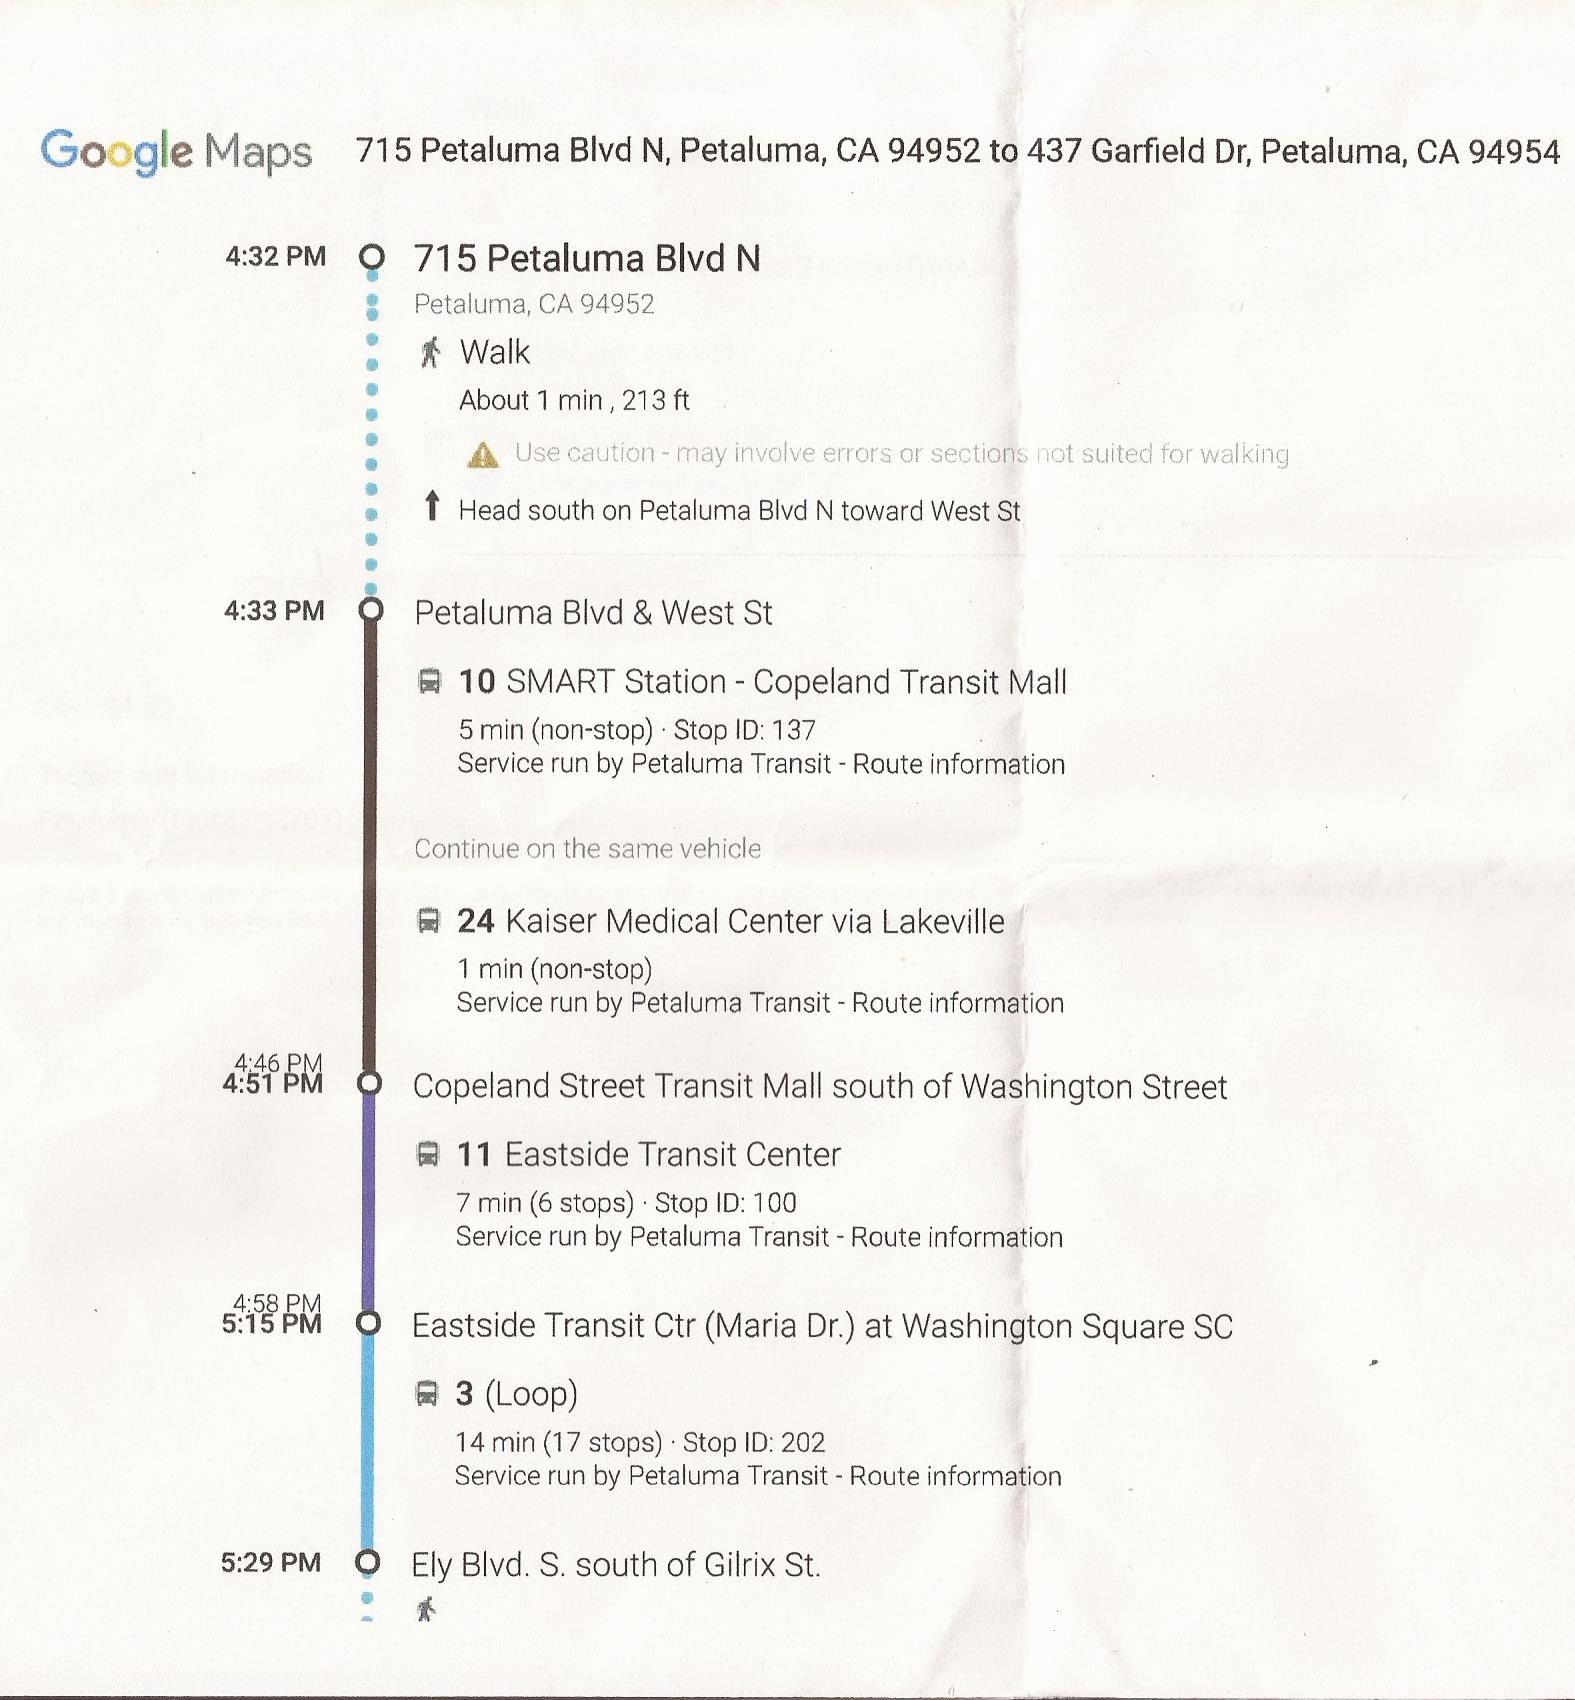 Scan of the bus schedule